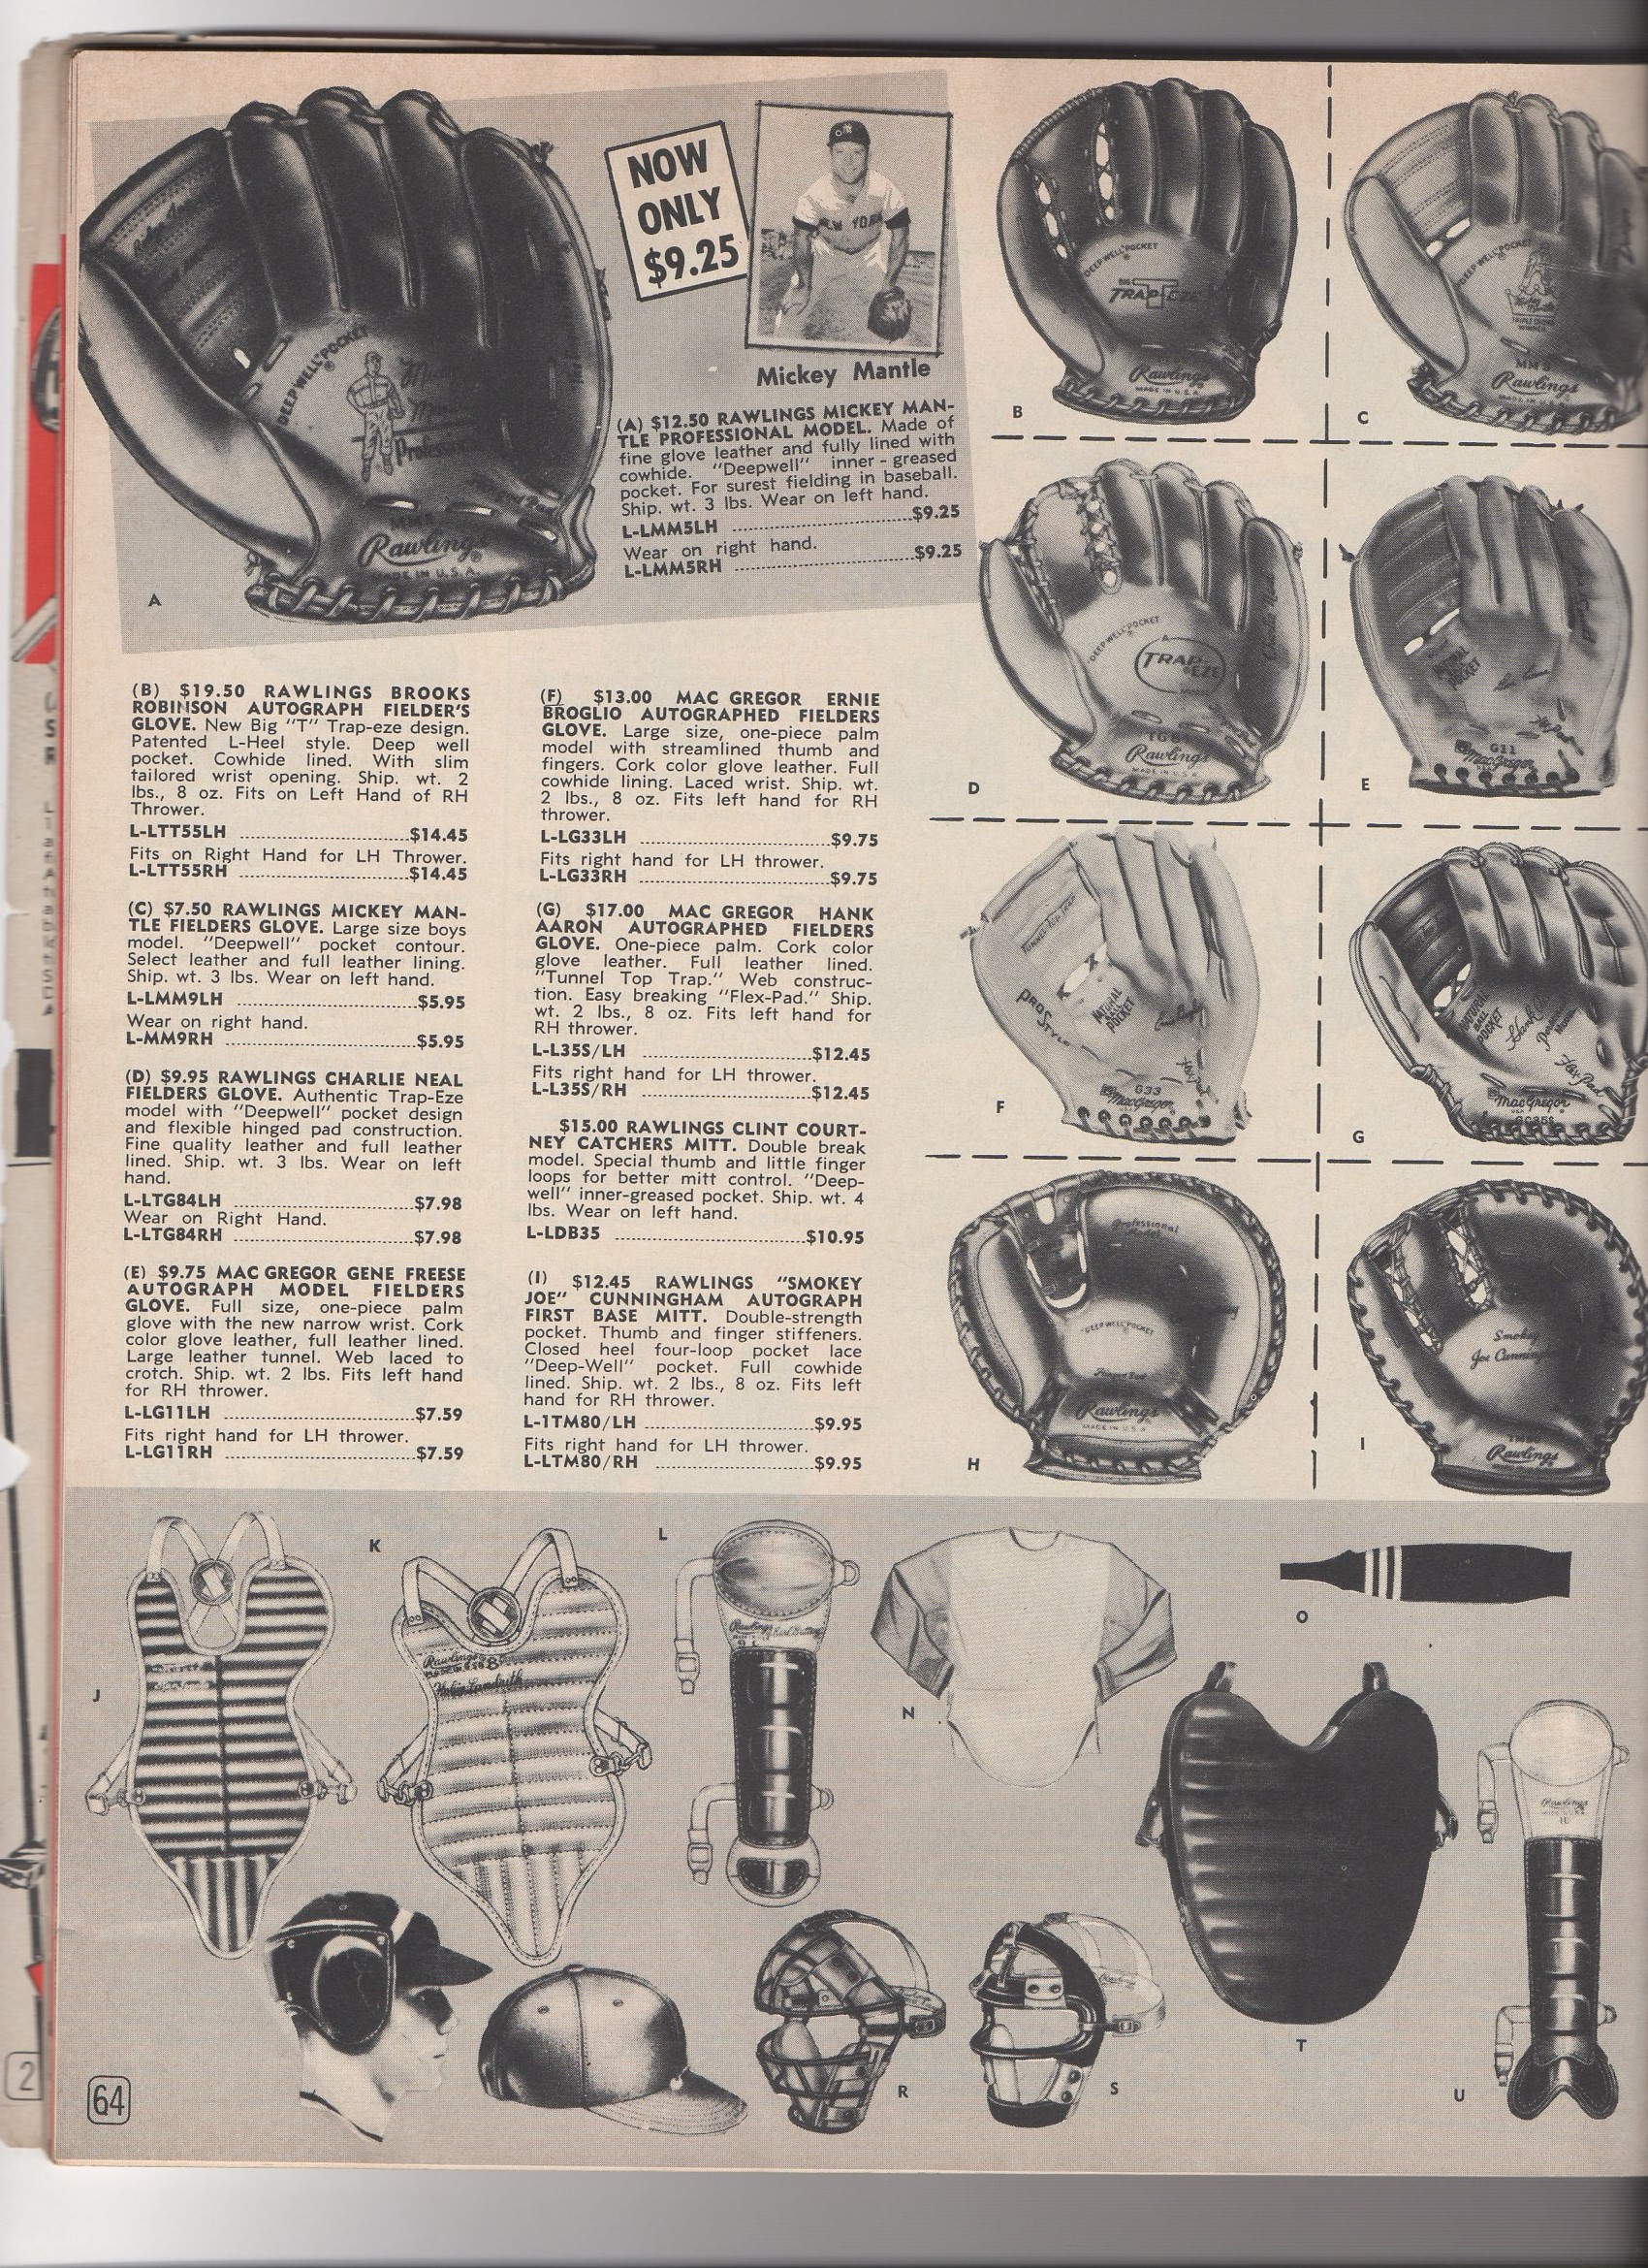 1963 gateway sporting goods catalog, no. 163